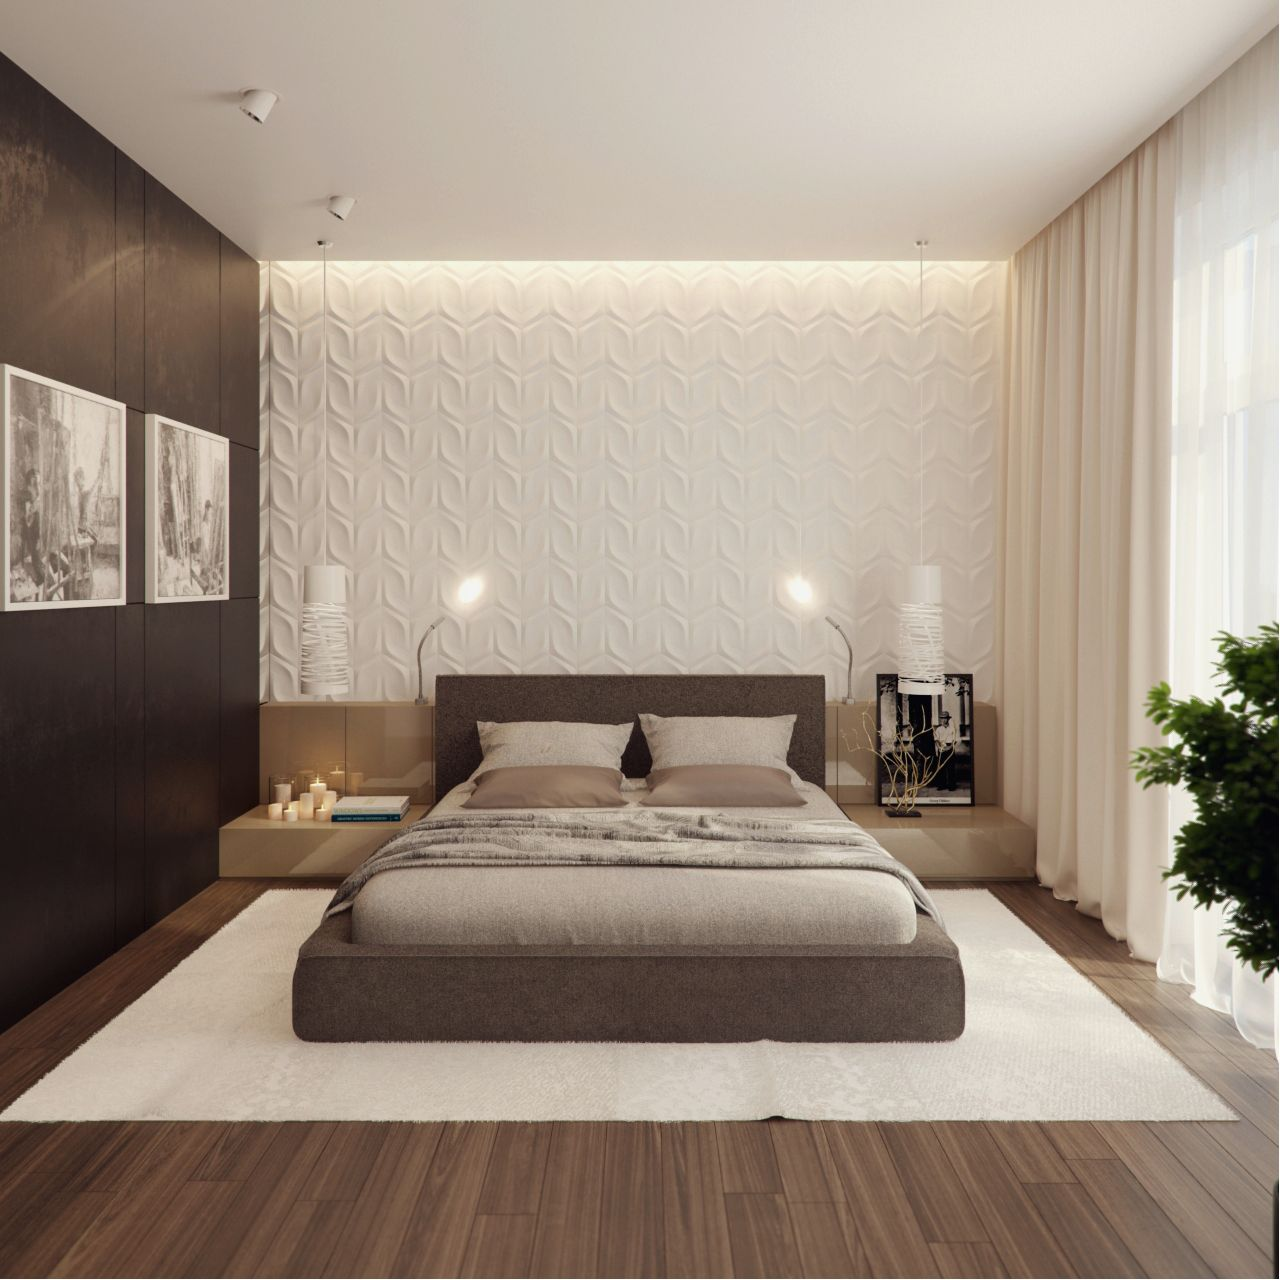 Interior Design_Master Bedroom